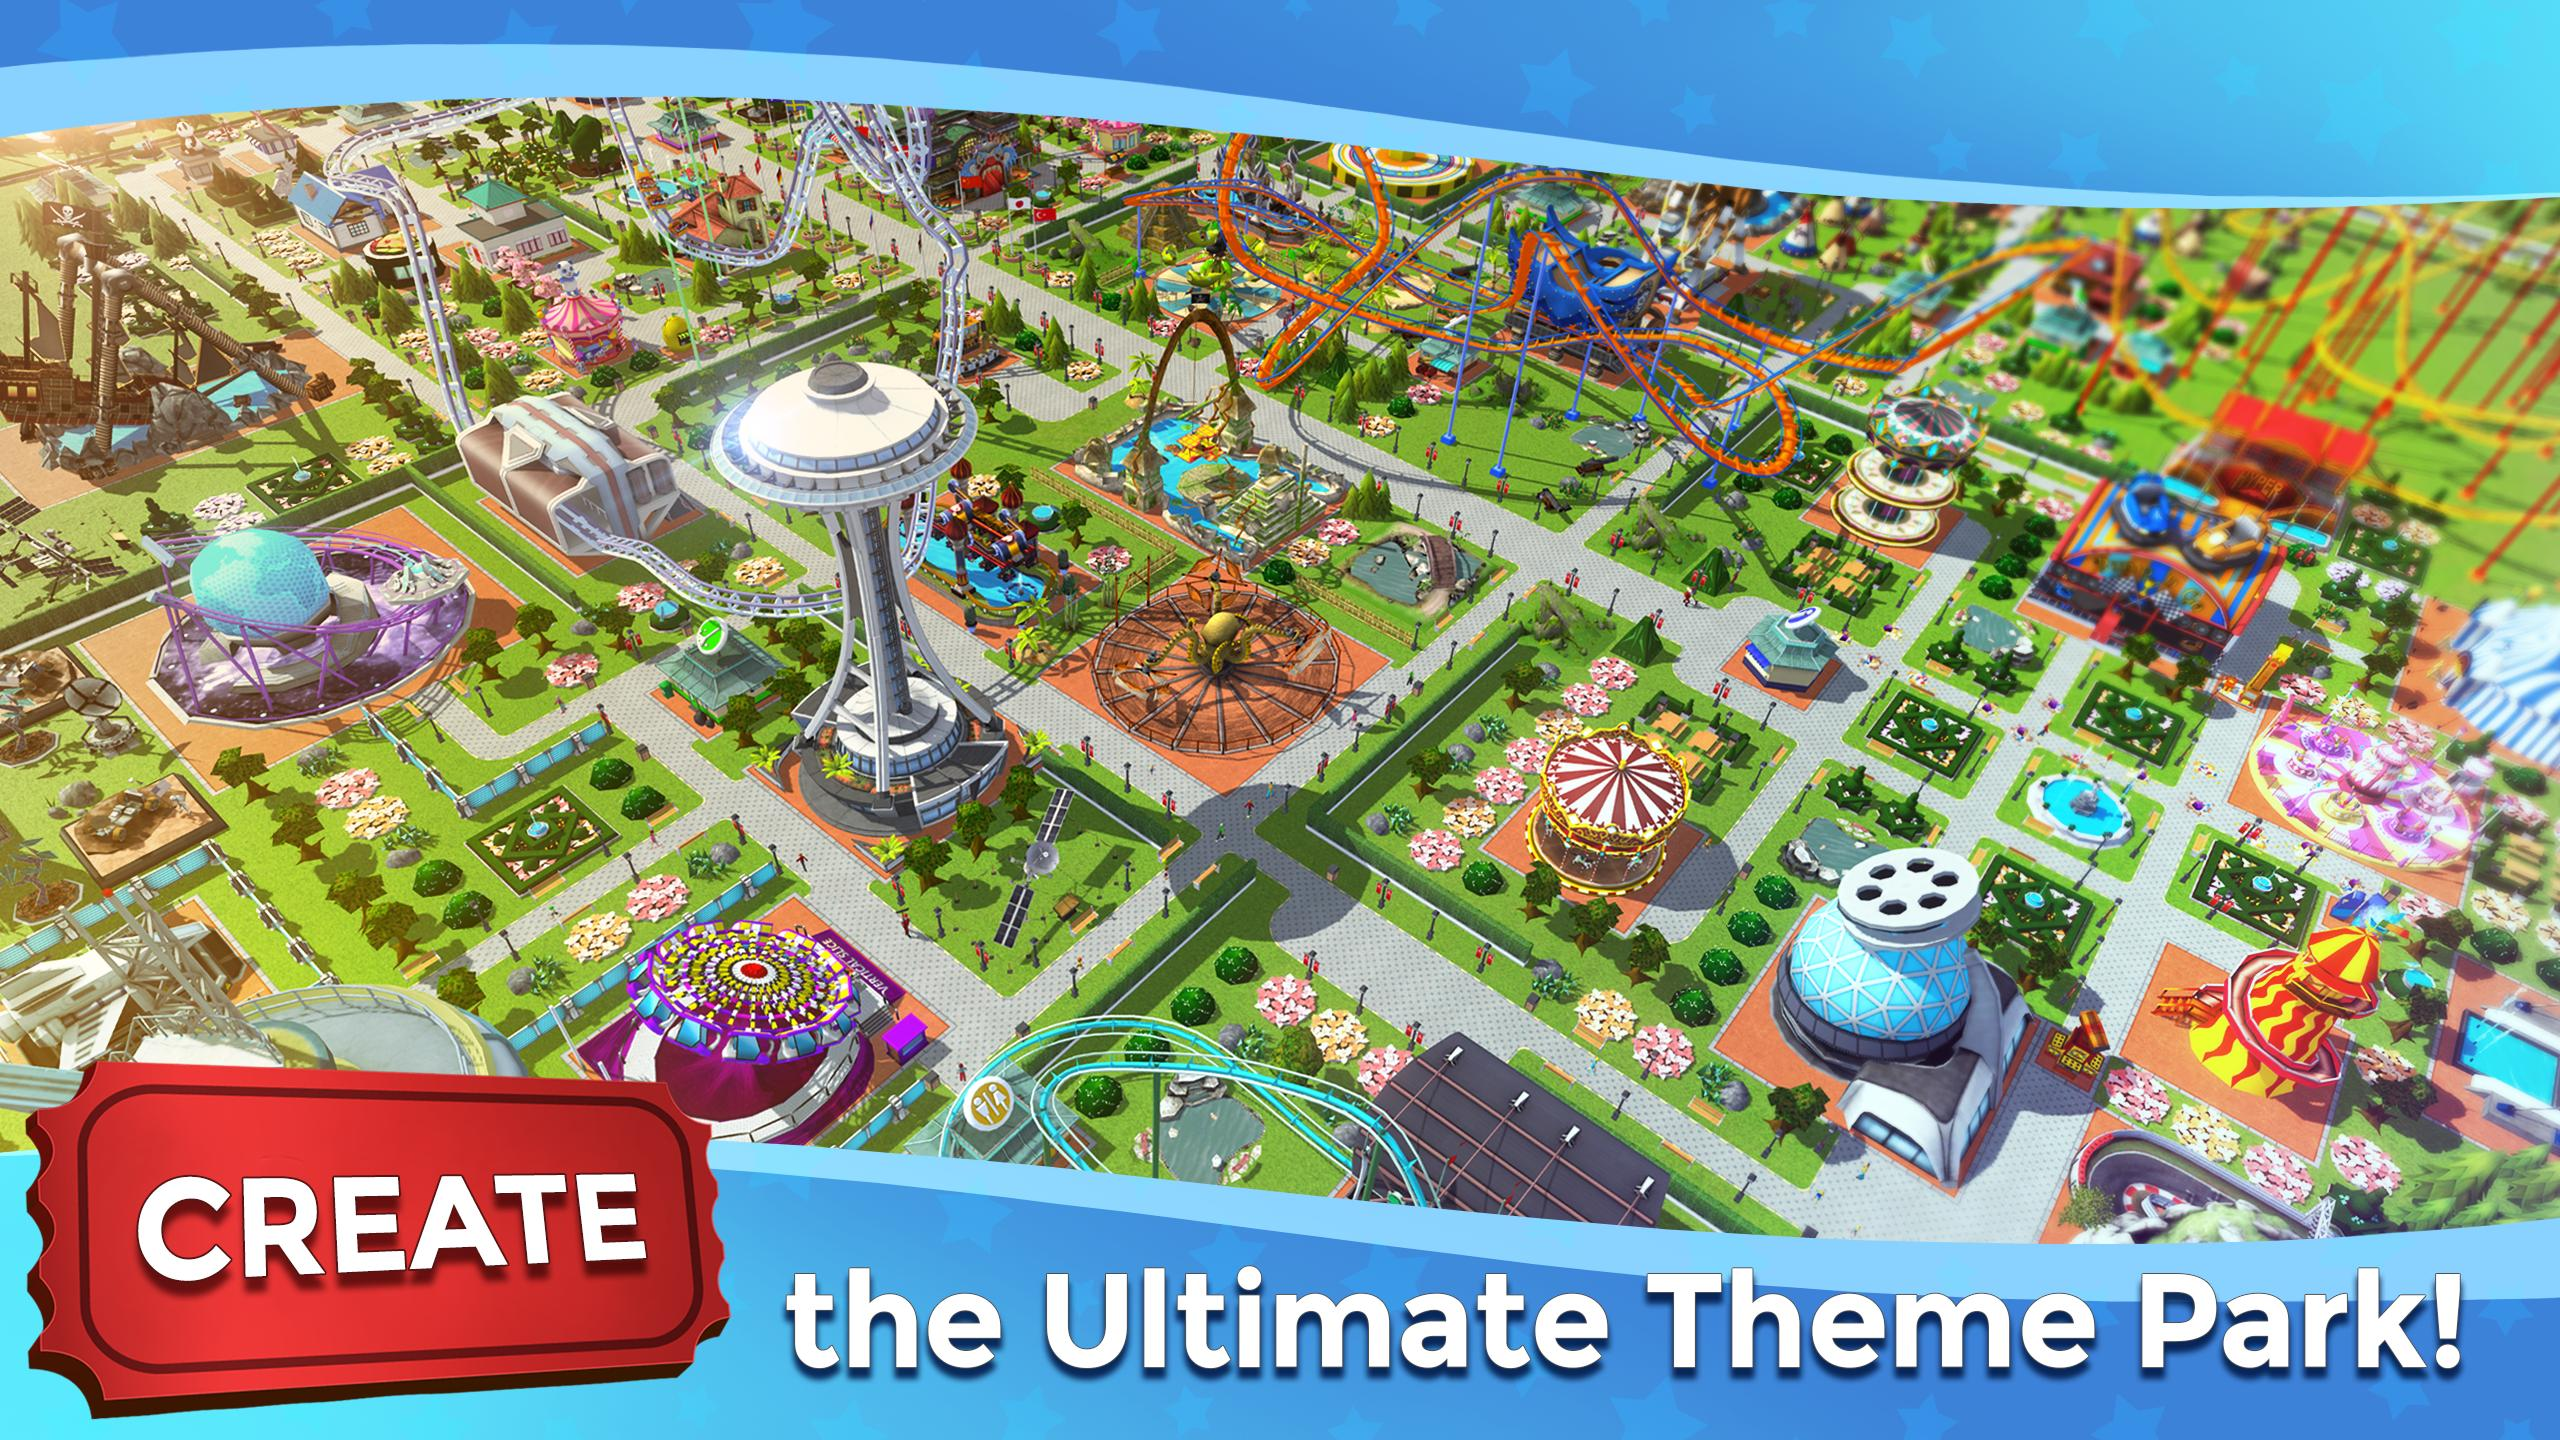 RollerCoaster Tycoon Touch - Build your Theme Park 3.5.0 Screenshot 9